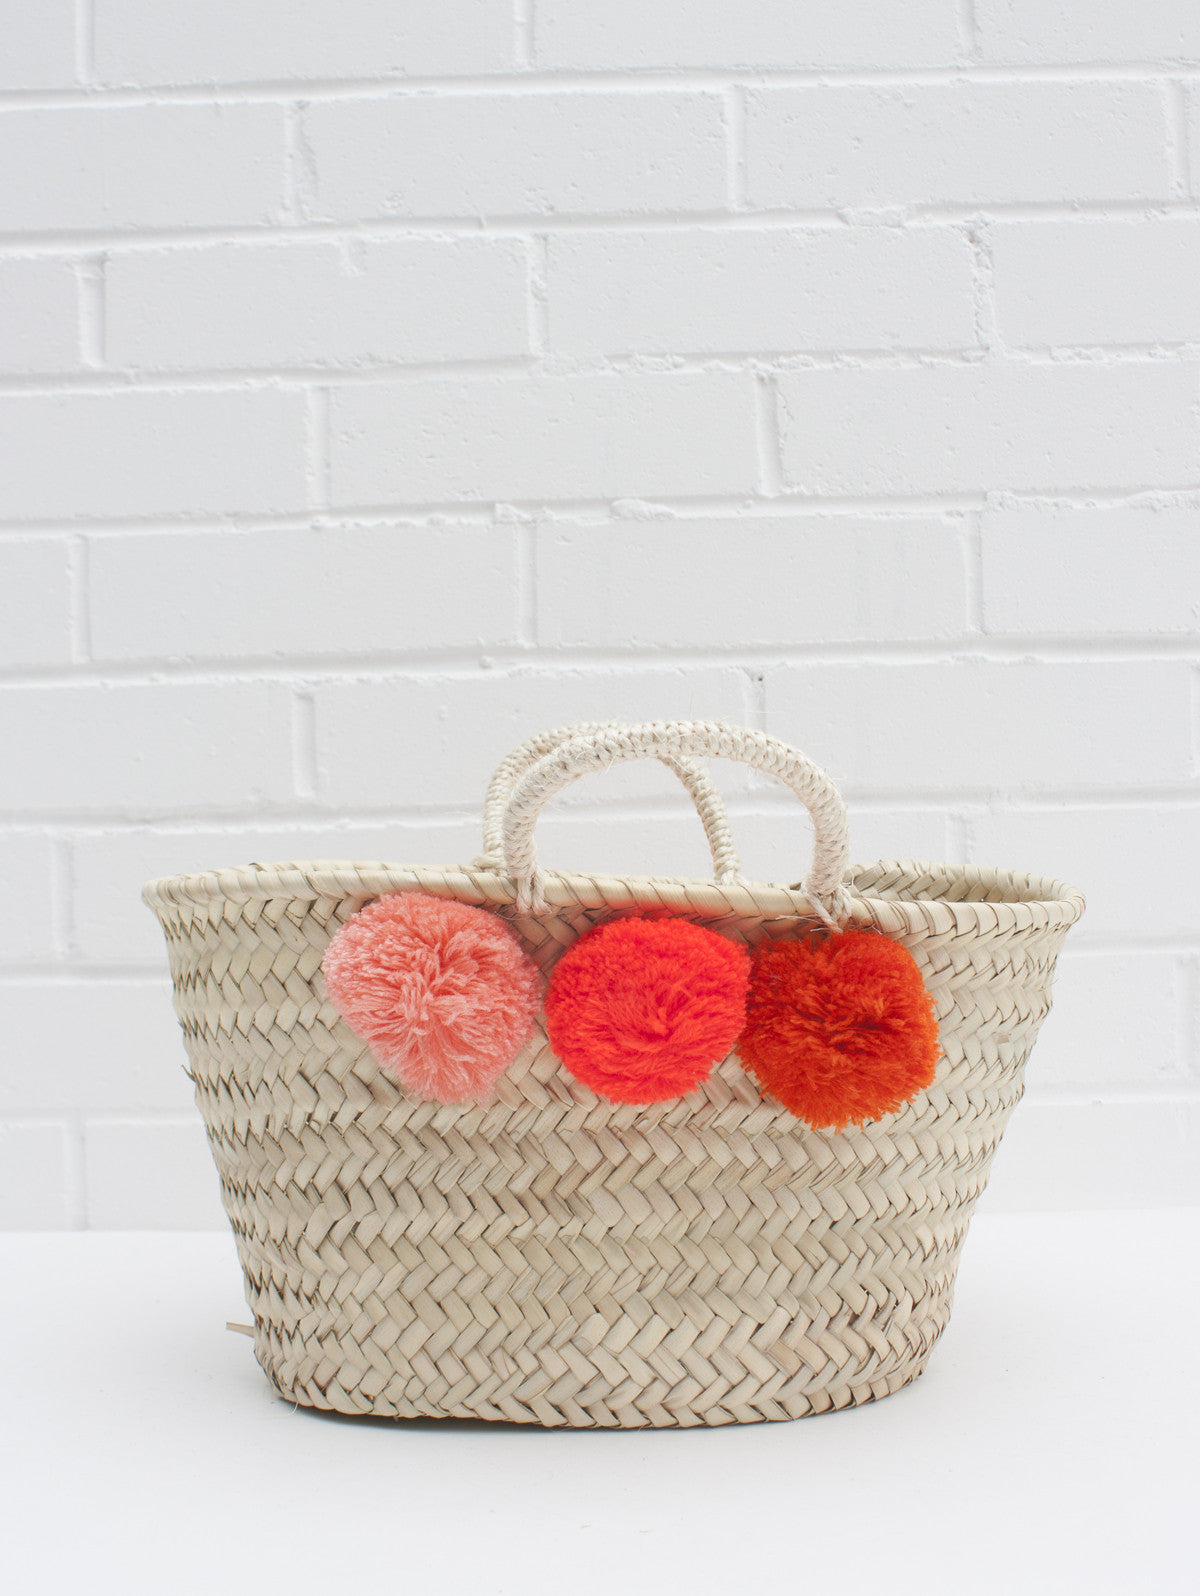 Mini Market Pom Pom Baskets, Mixed